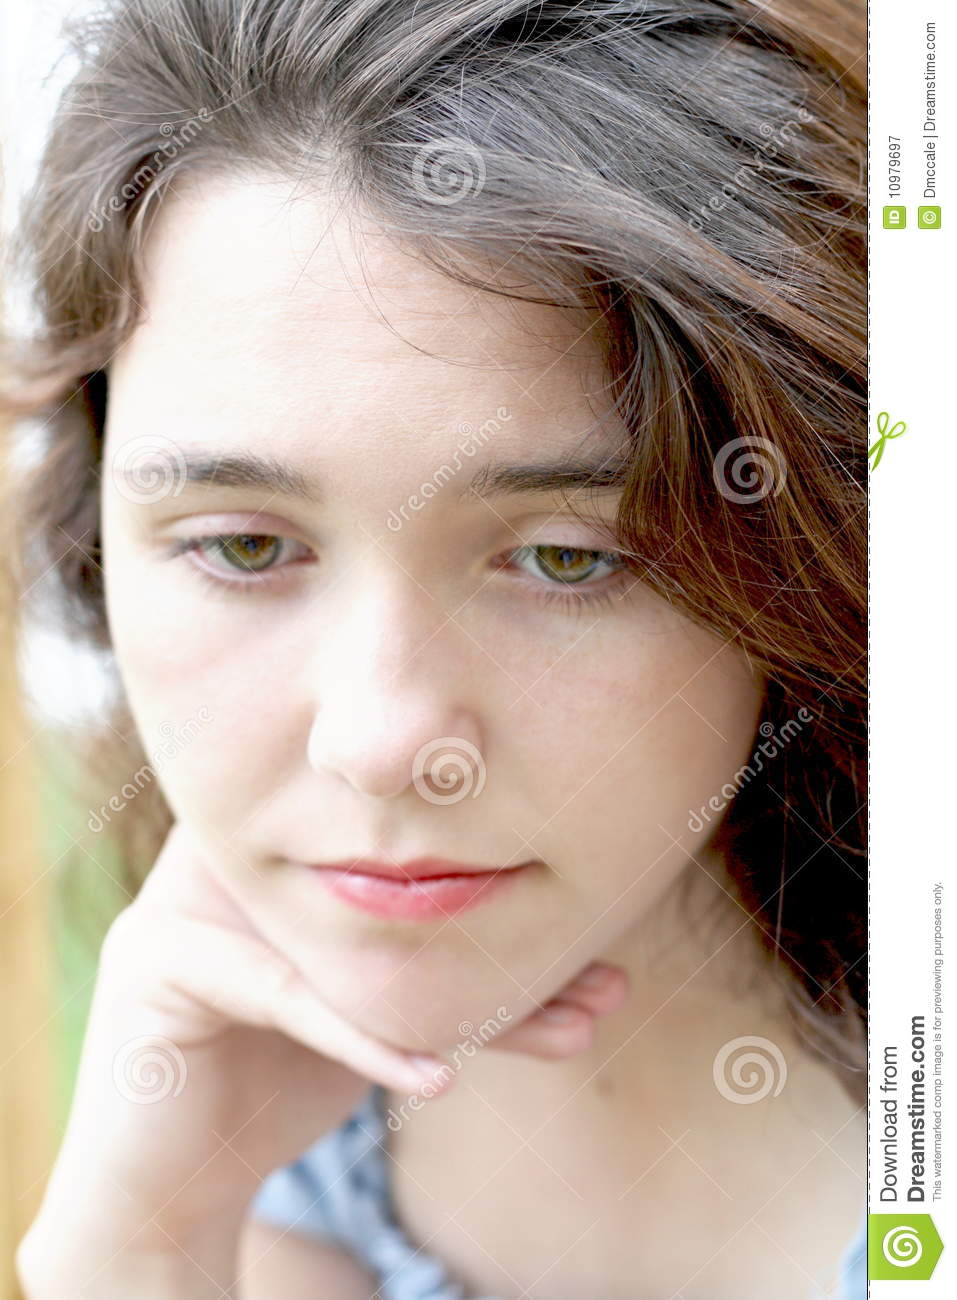 Teen Girl Royalty Free Stock Photography - Image 10979697-6070